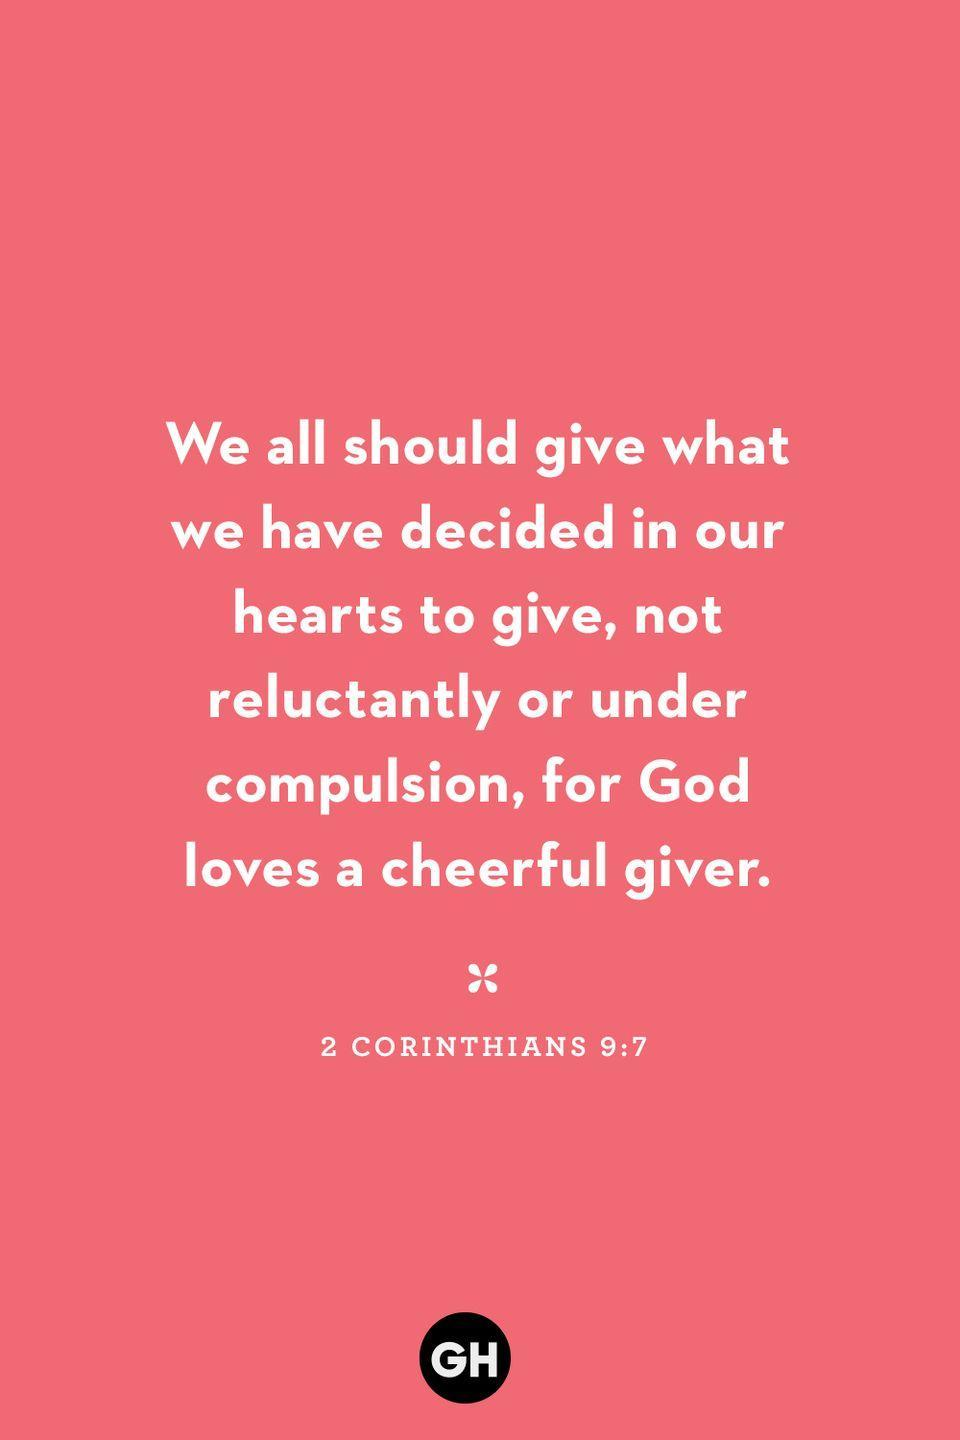 <p>We all should give what we have decided in our hearts to give, not reluctantly or under compulsion, for God loves a cheerful giver.</p>